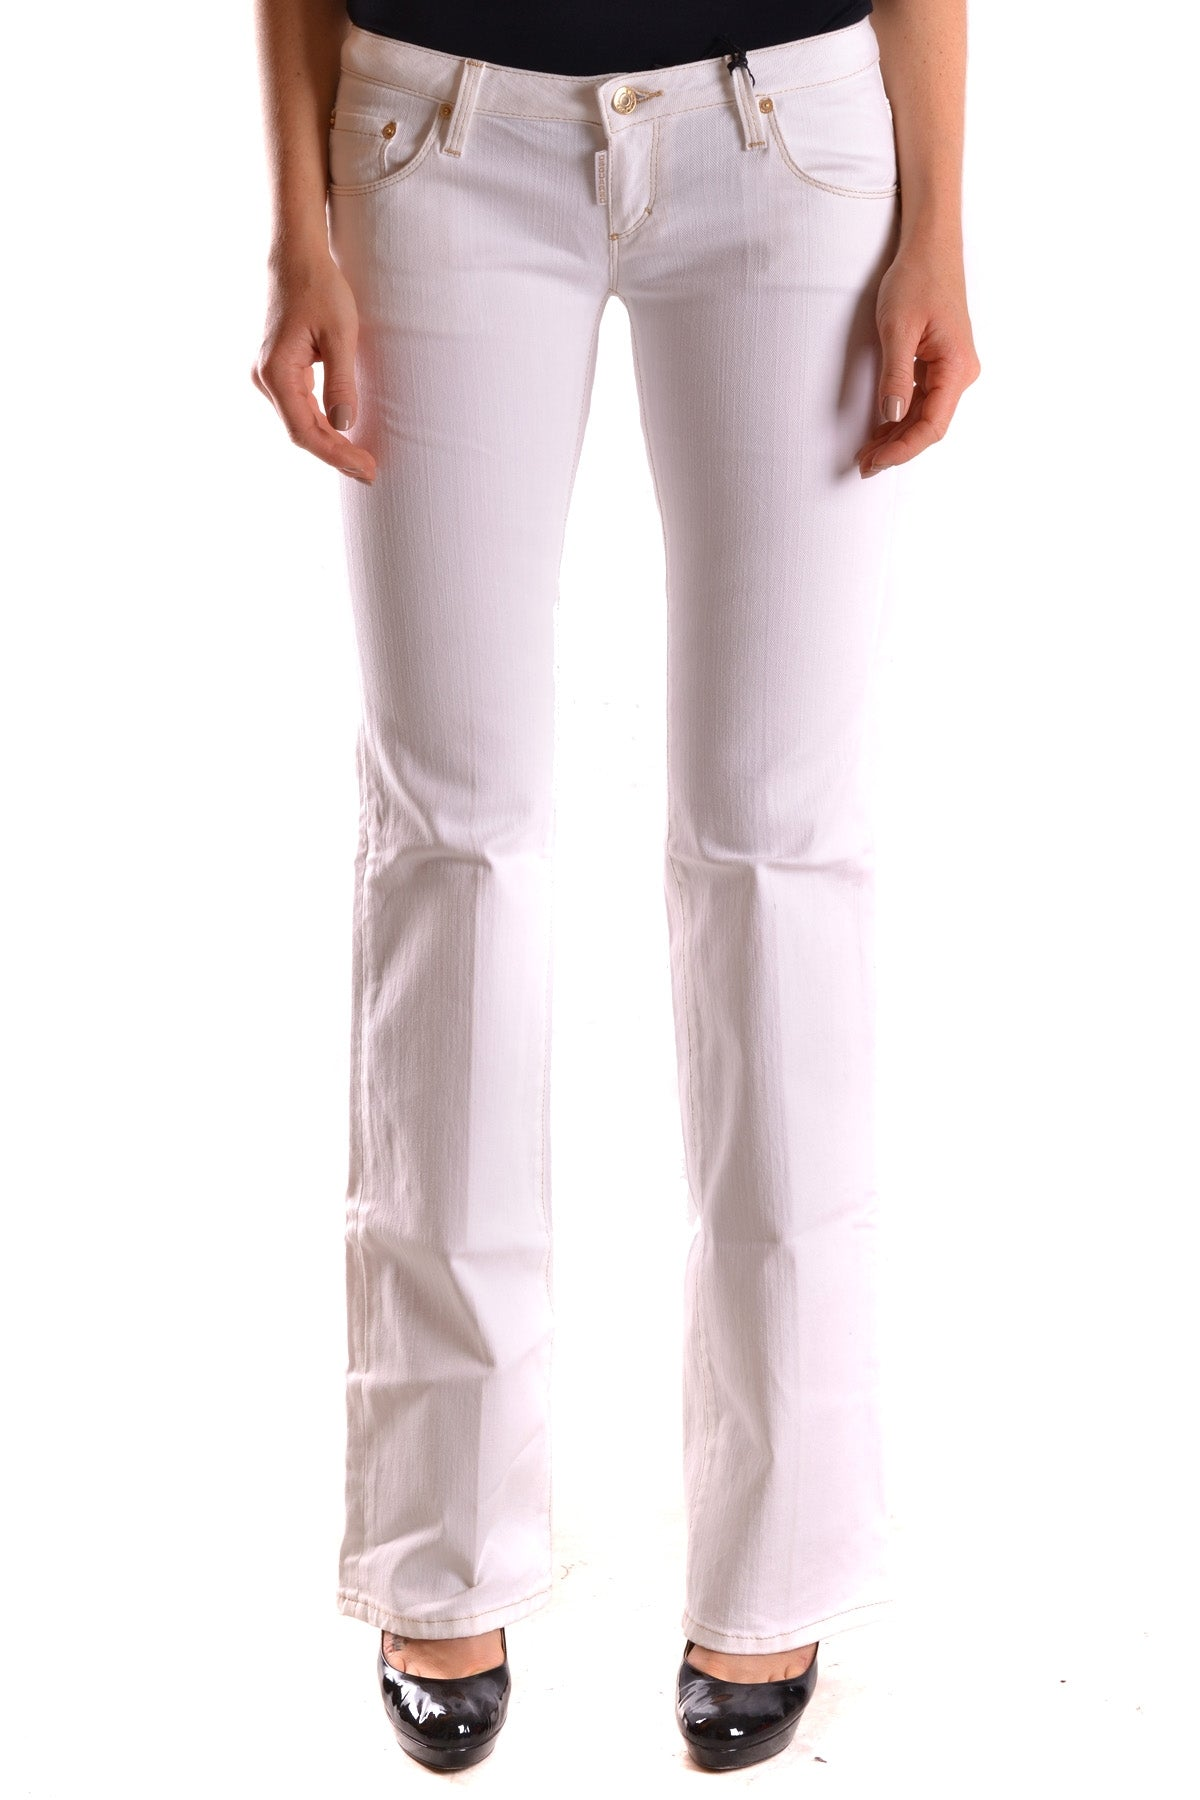 Jeans Dsquared-Jeans - WOMAN-38-Product Details Terms: New With LabelYear: 2017Main Color: WhiteGender: WomanMade In: ItalySize: ItSeason: Spring / SummerClothing Type: JeansComposition: Cotton 98%, Elastane 2%-Keyomi-Sook